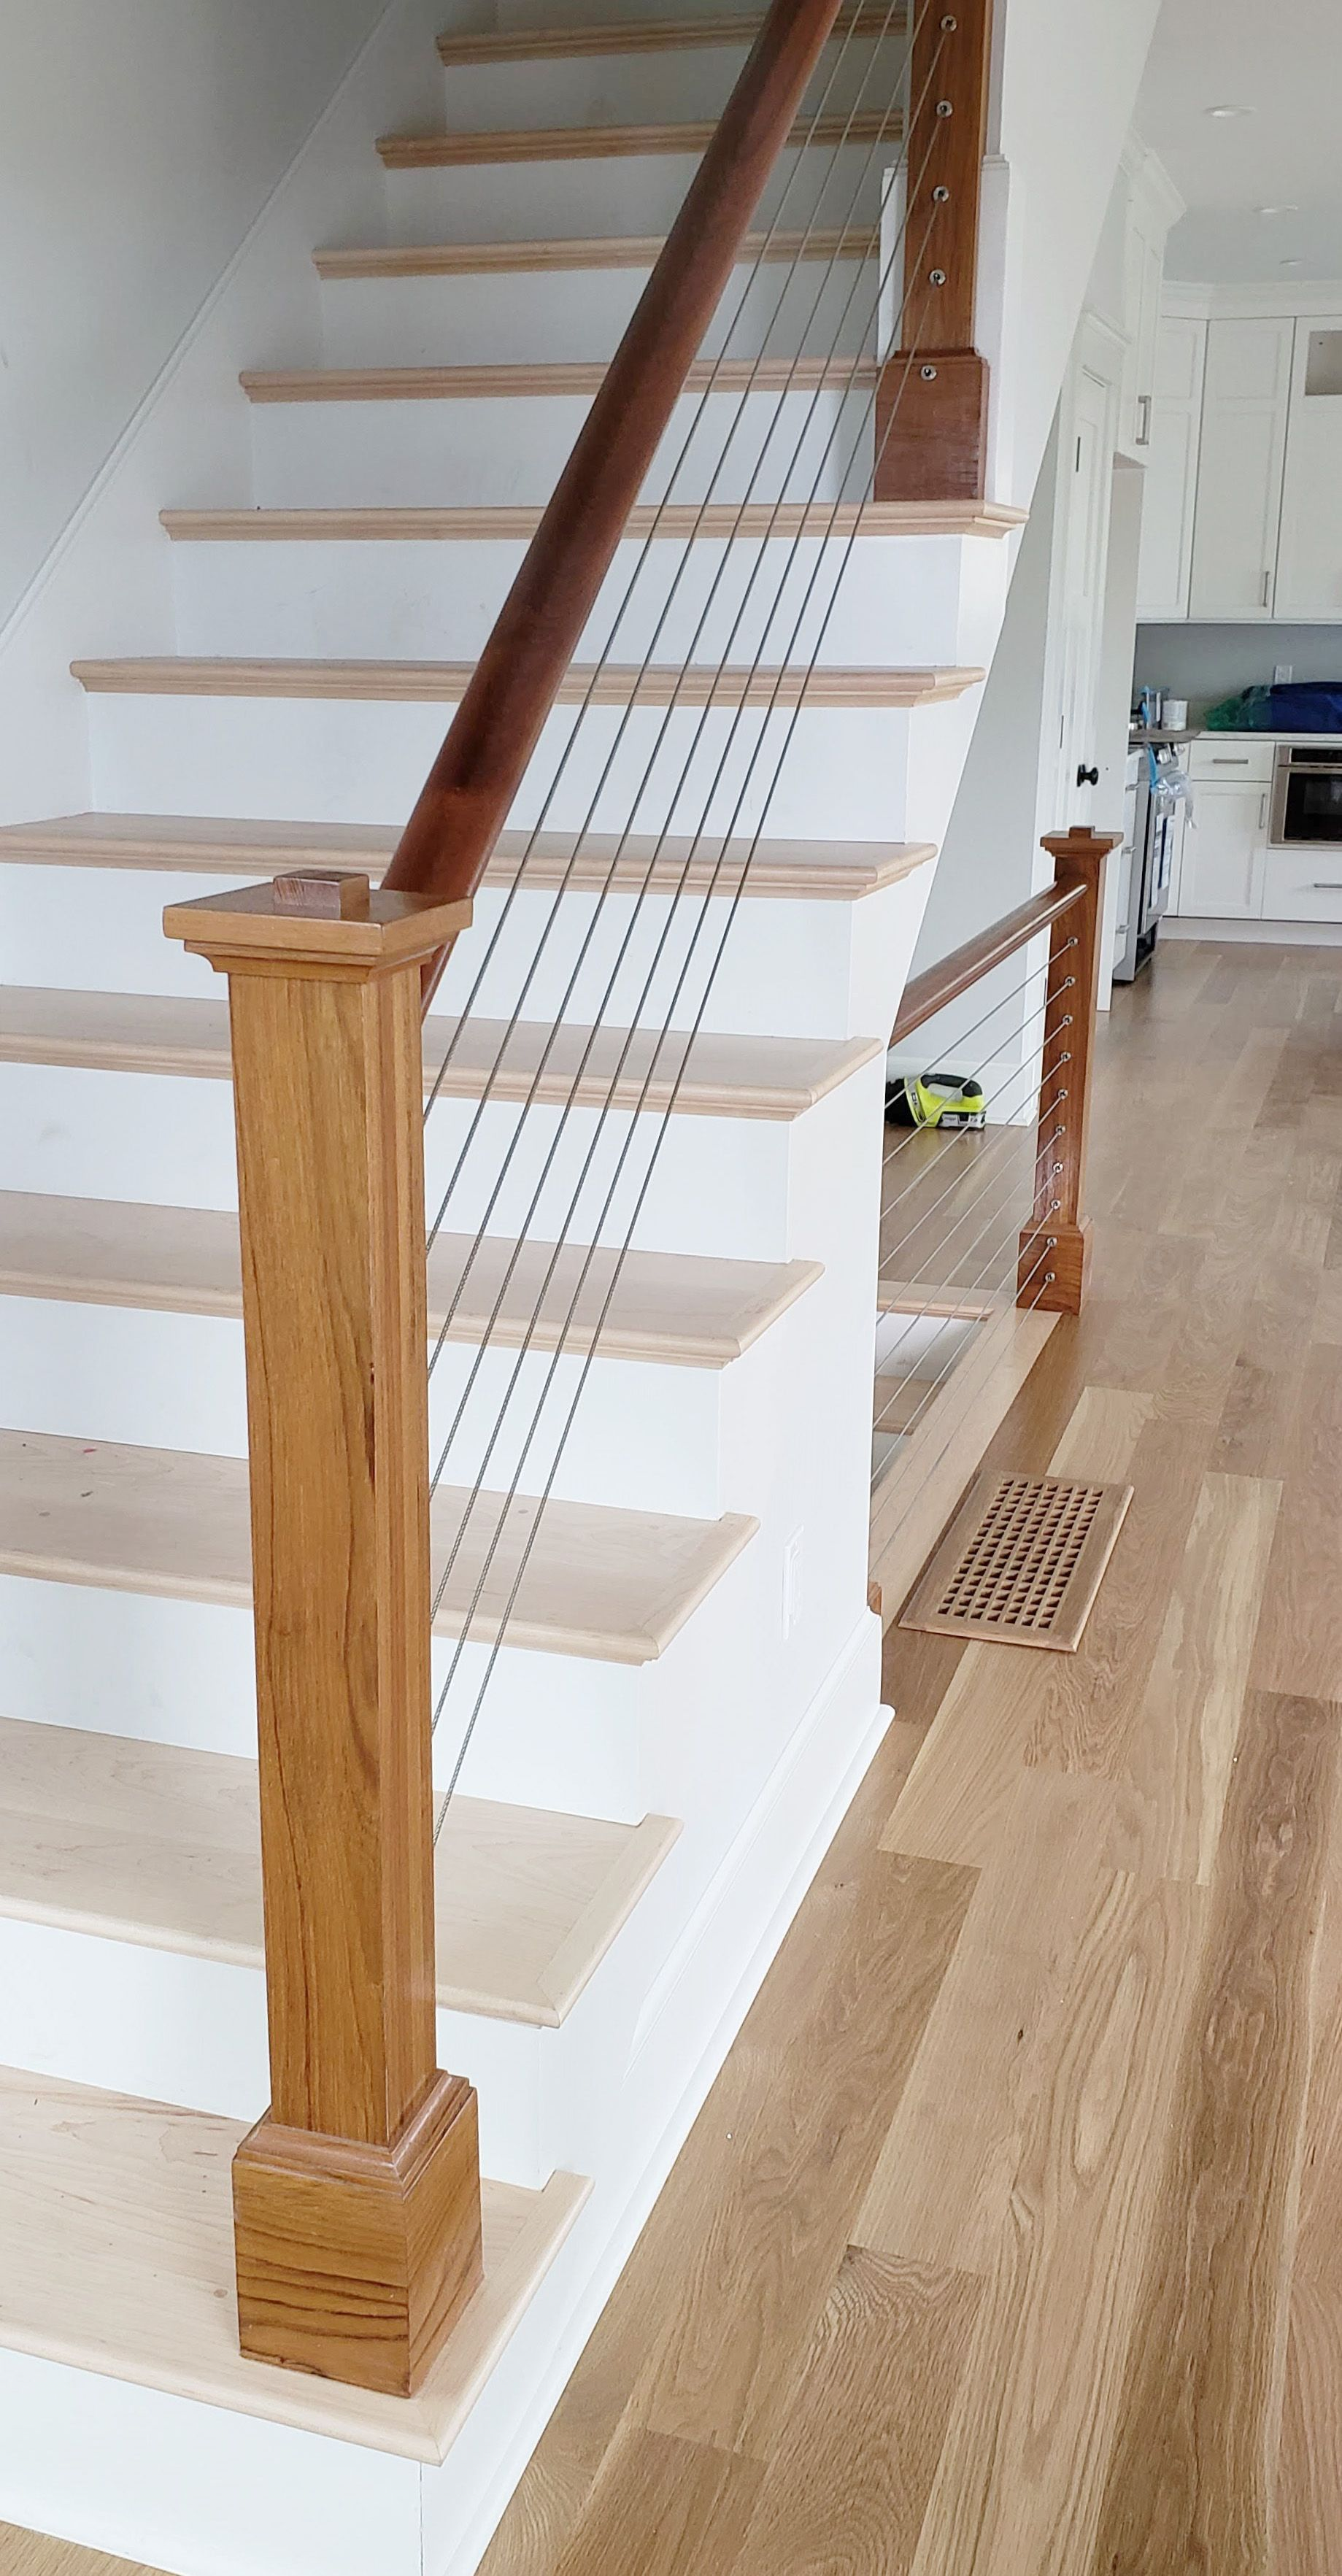 Cable Wire Staircase Cable Wire Railings Wood And Metal Staircase Custom Staircase Staircase Ideas Cable Stair Railing Indoor Railing Luxury Staircase